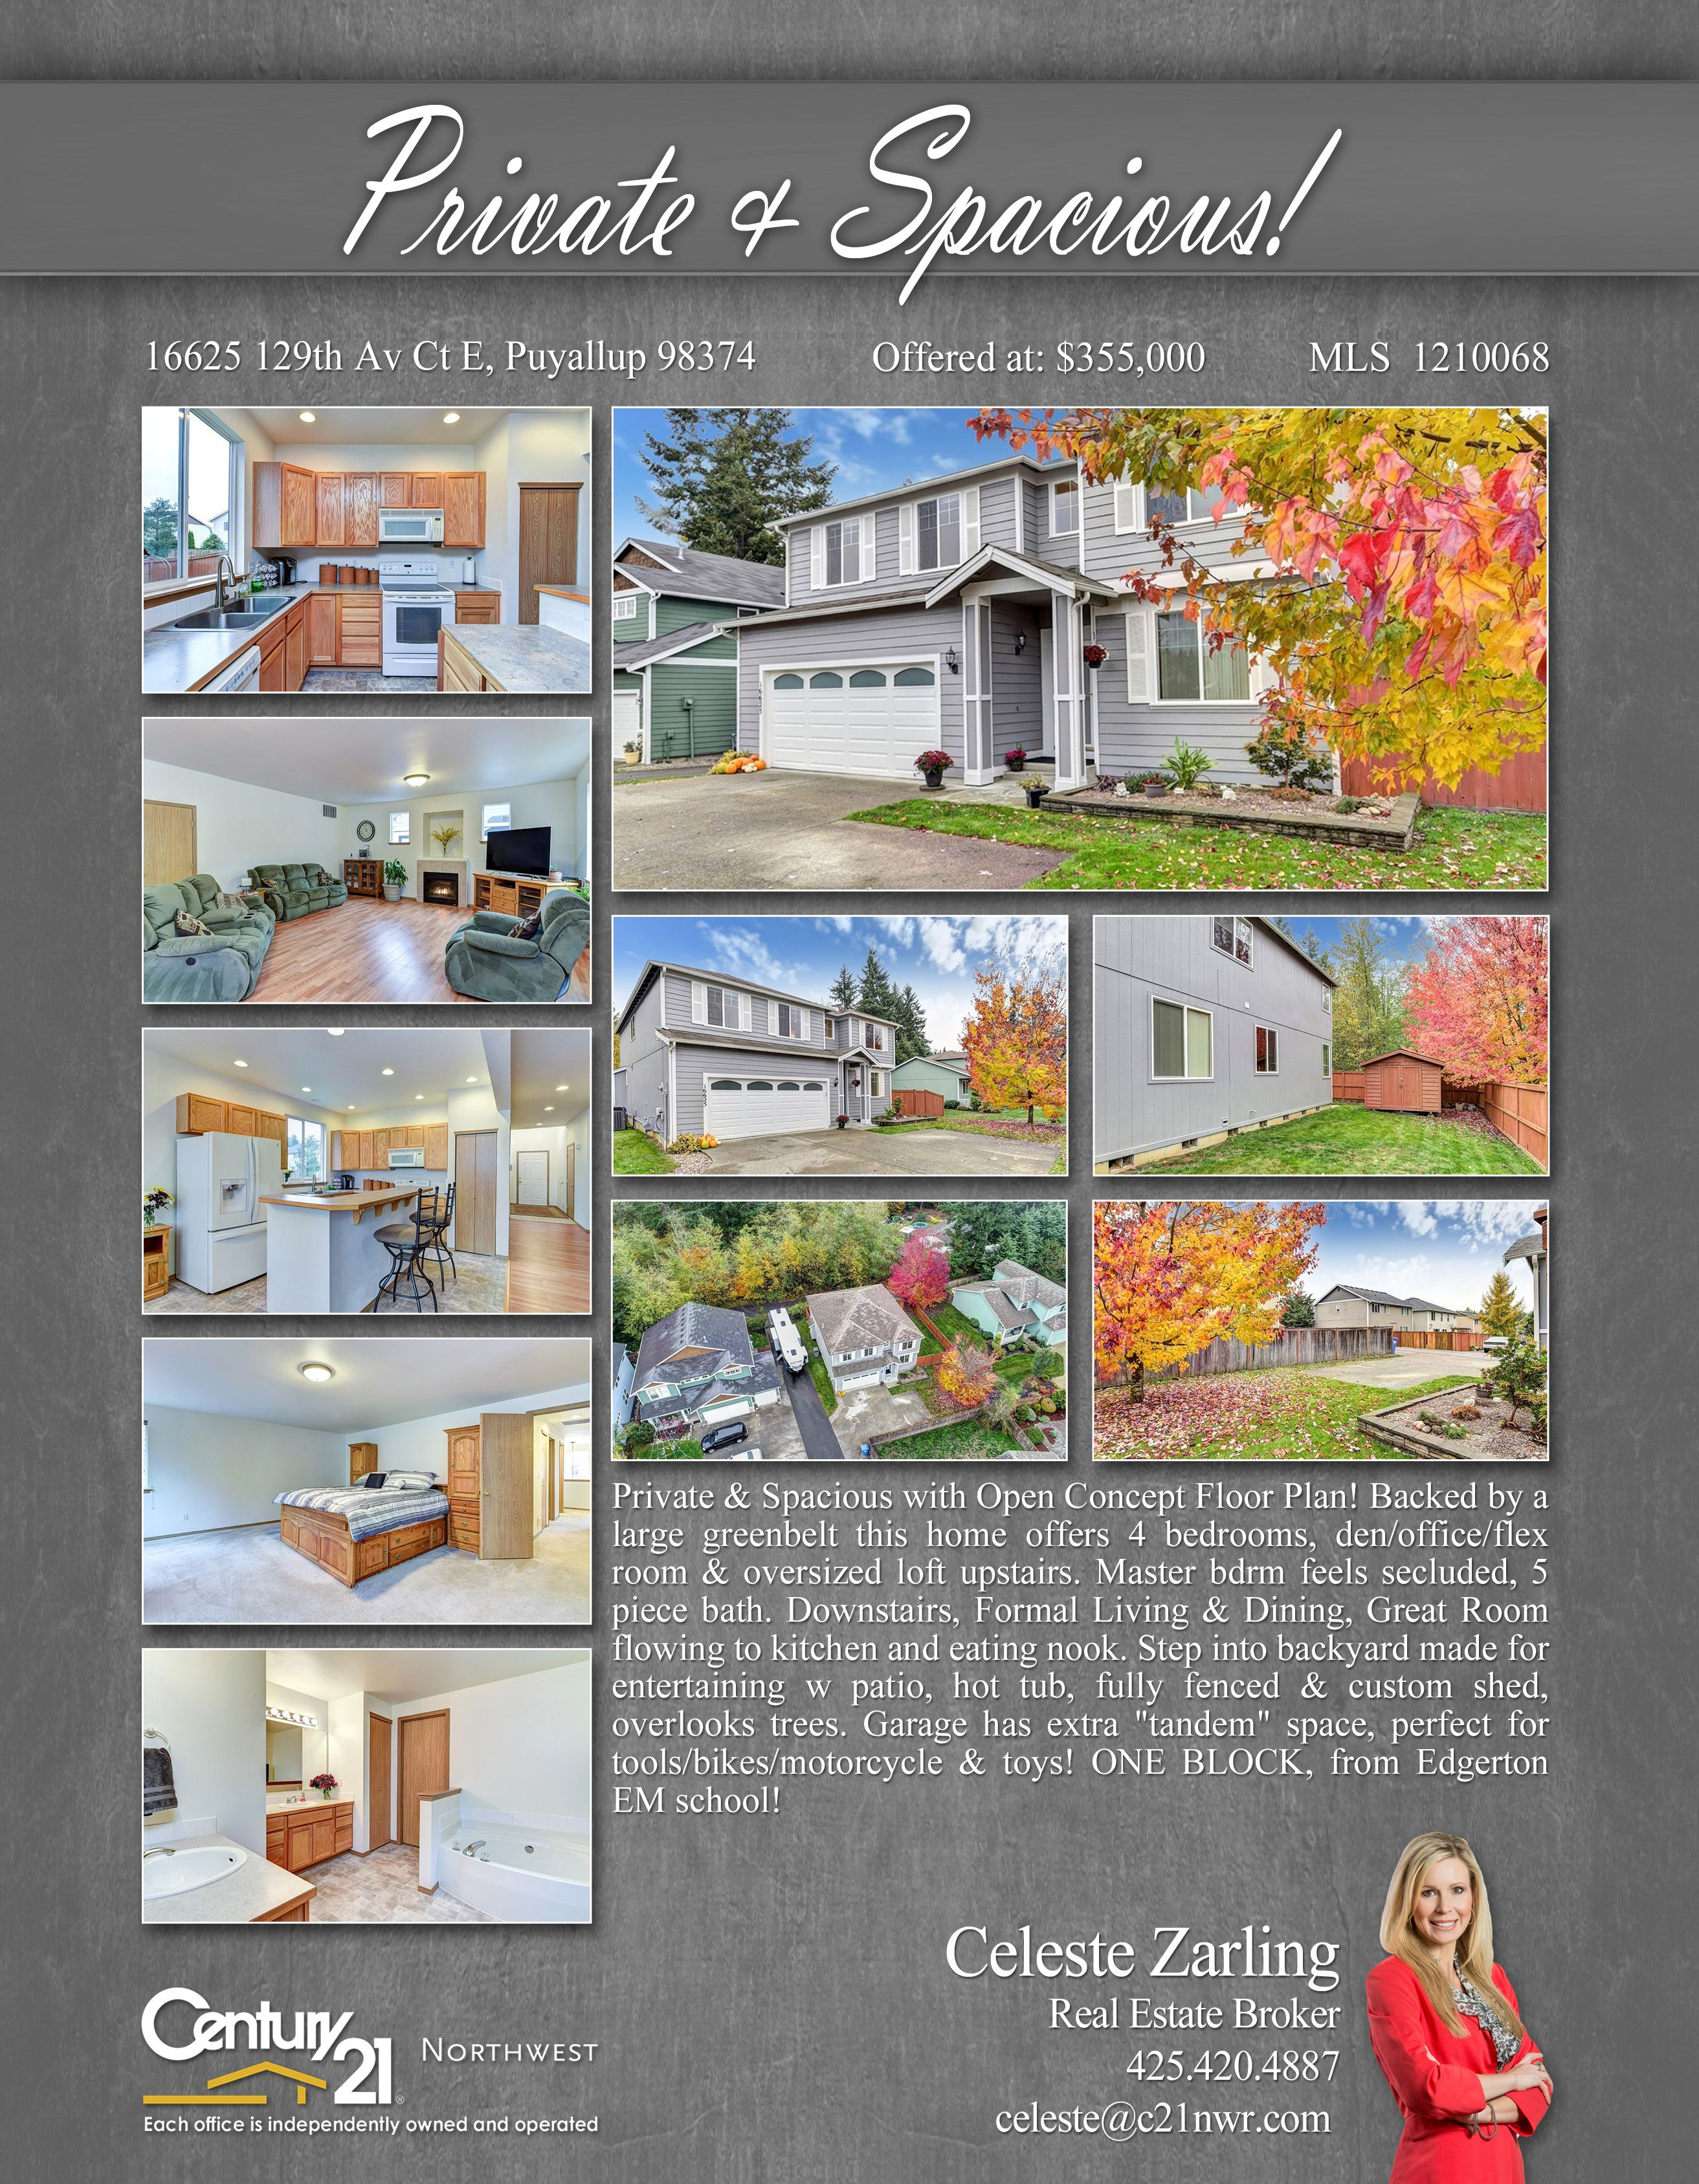 ... Floor Plan! Backed By A Large Greenbelt This Home Offers 4 Bedrooms,  Den/office/flex Room U0026 Oversized Loft Upstairs. Master Bdrm Feels Secluded, 5  Piece ...